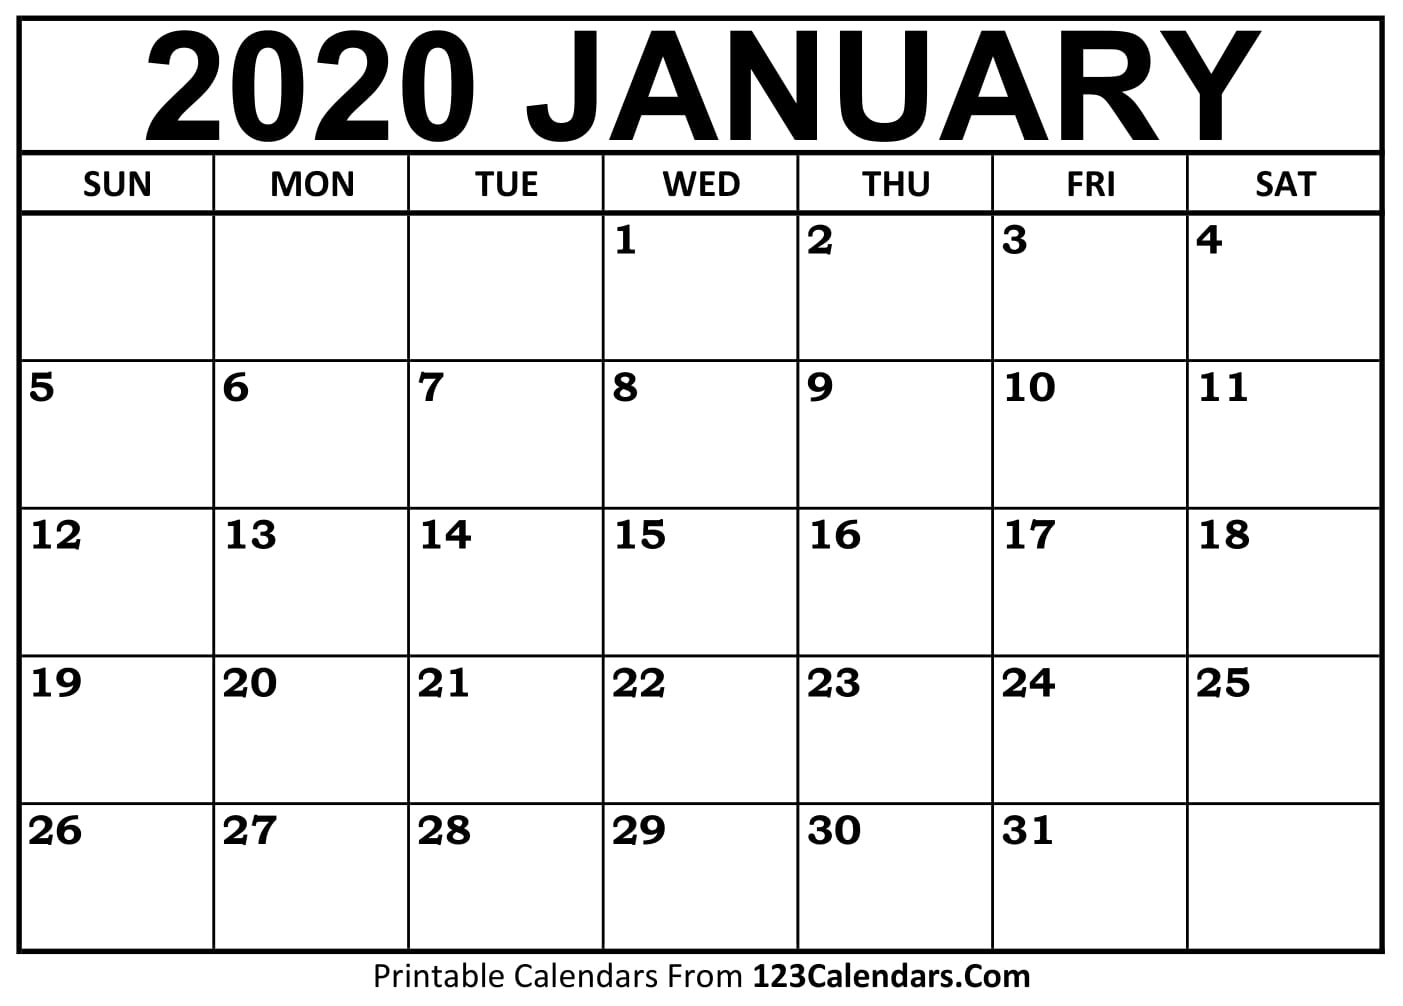 January 2020 Printable Calendar | 123Calendars intended for 123 Calendar January 2020